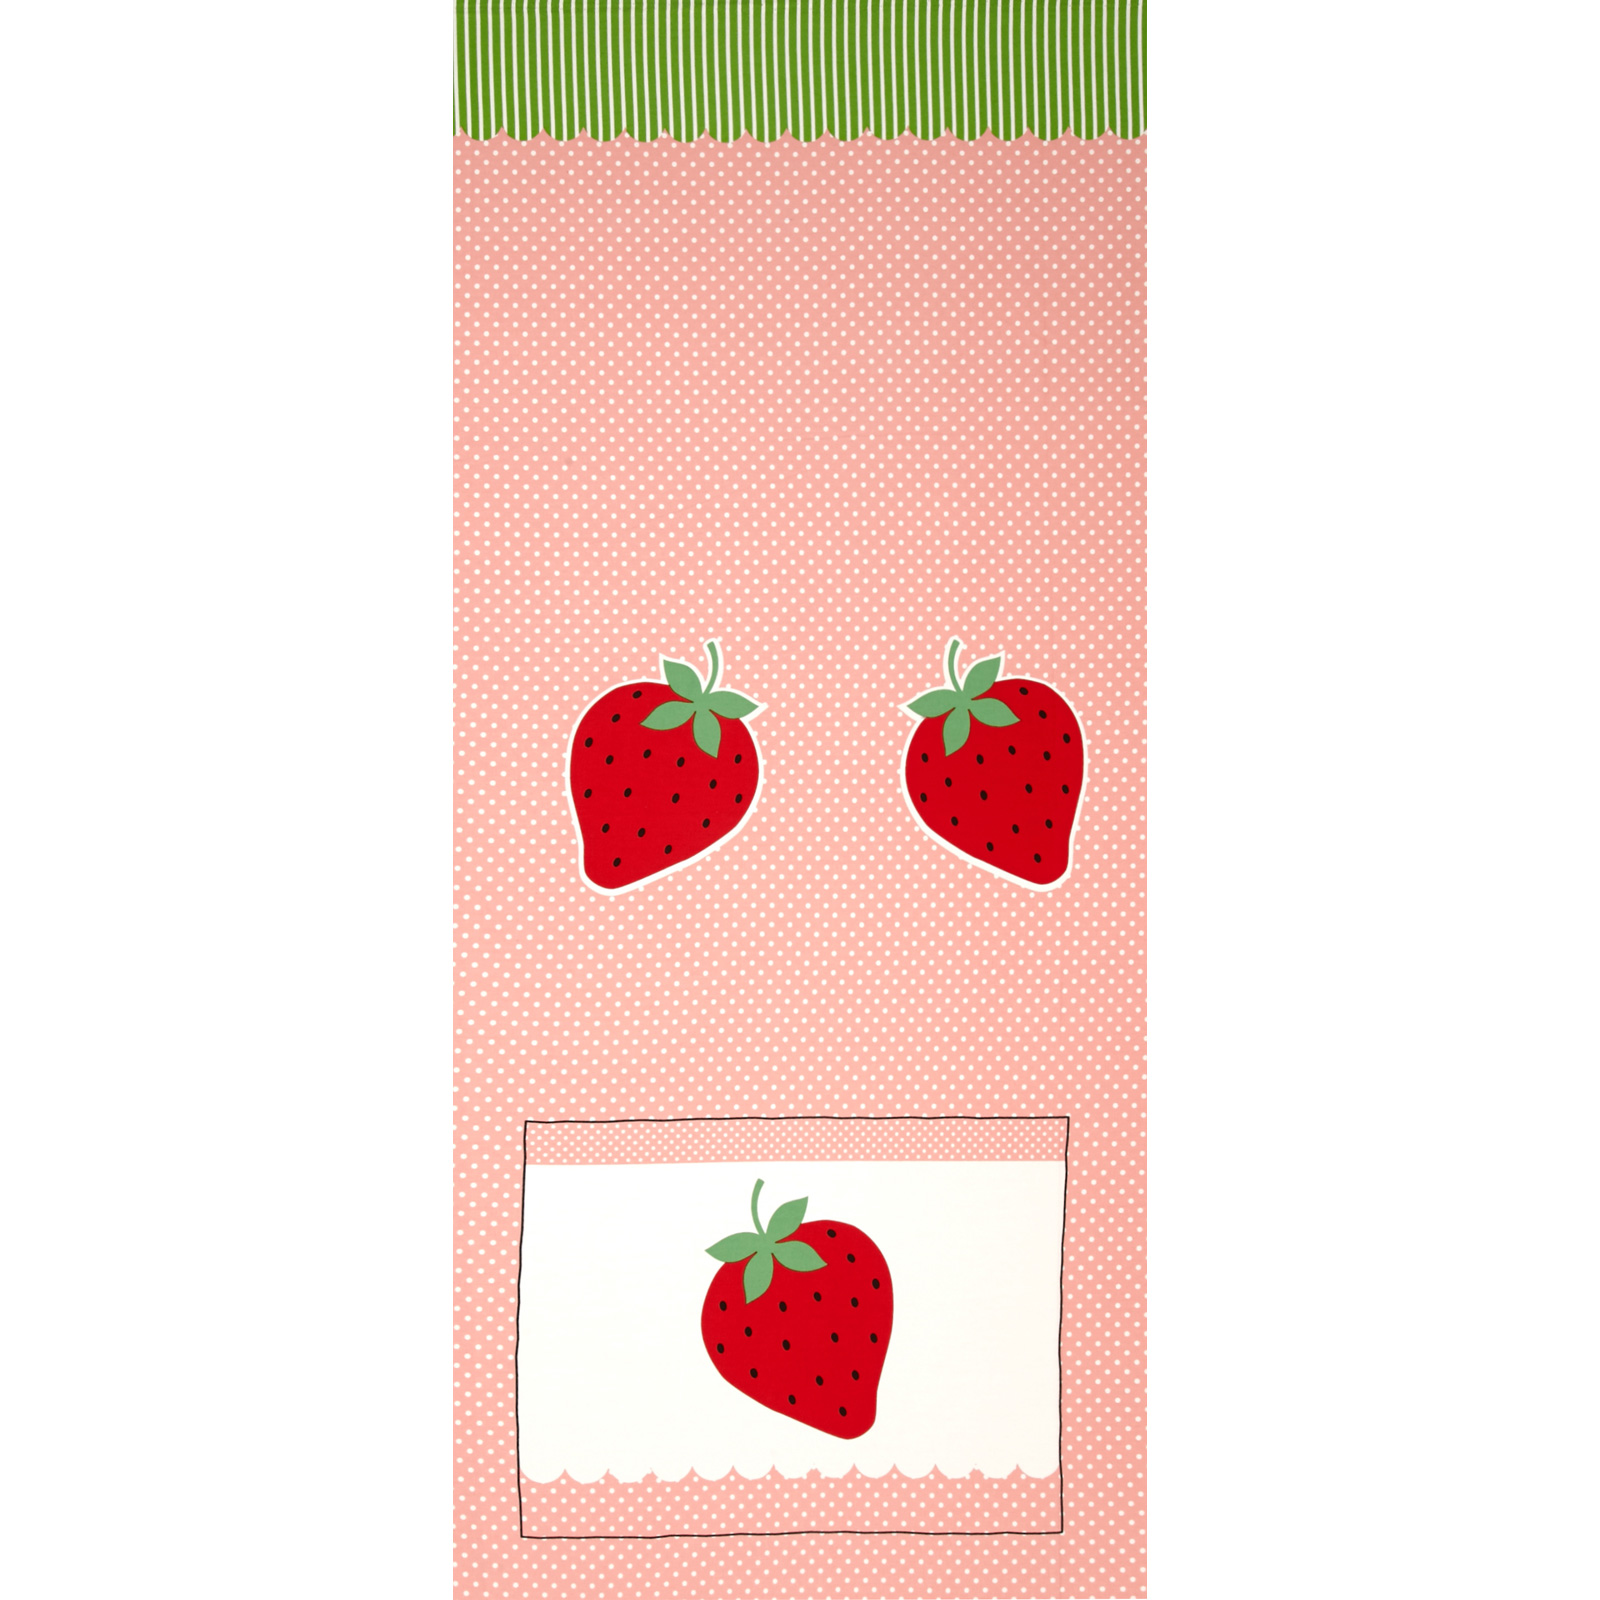 Image of Seven Islands Strawberries and Polka Dots Pink Fabric